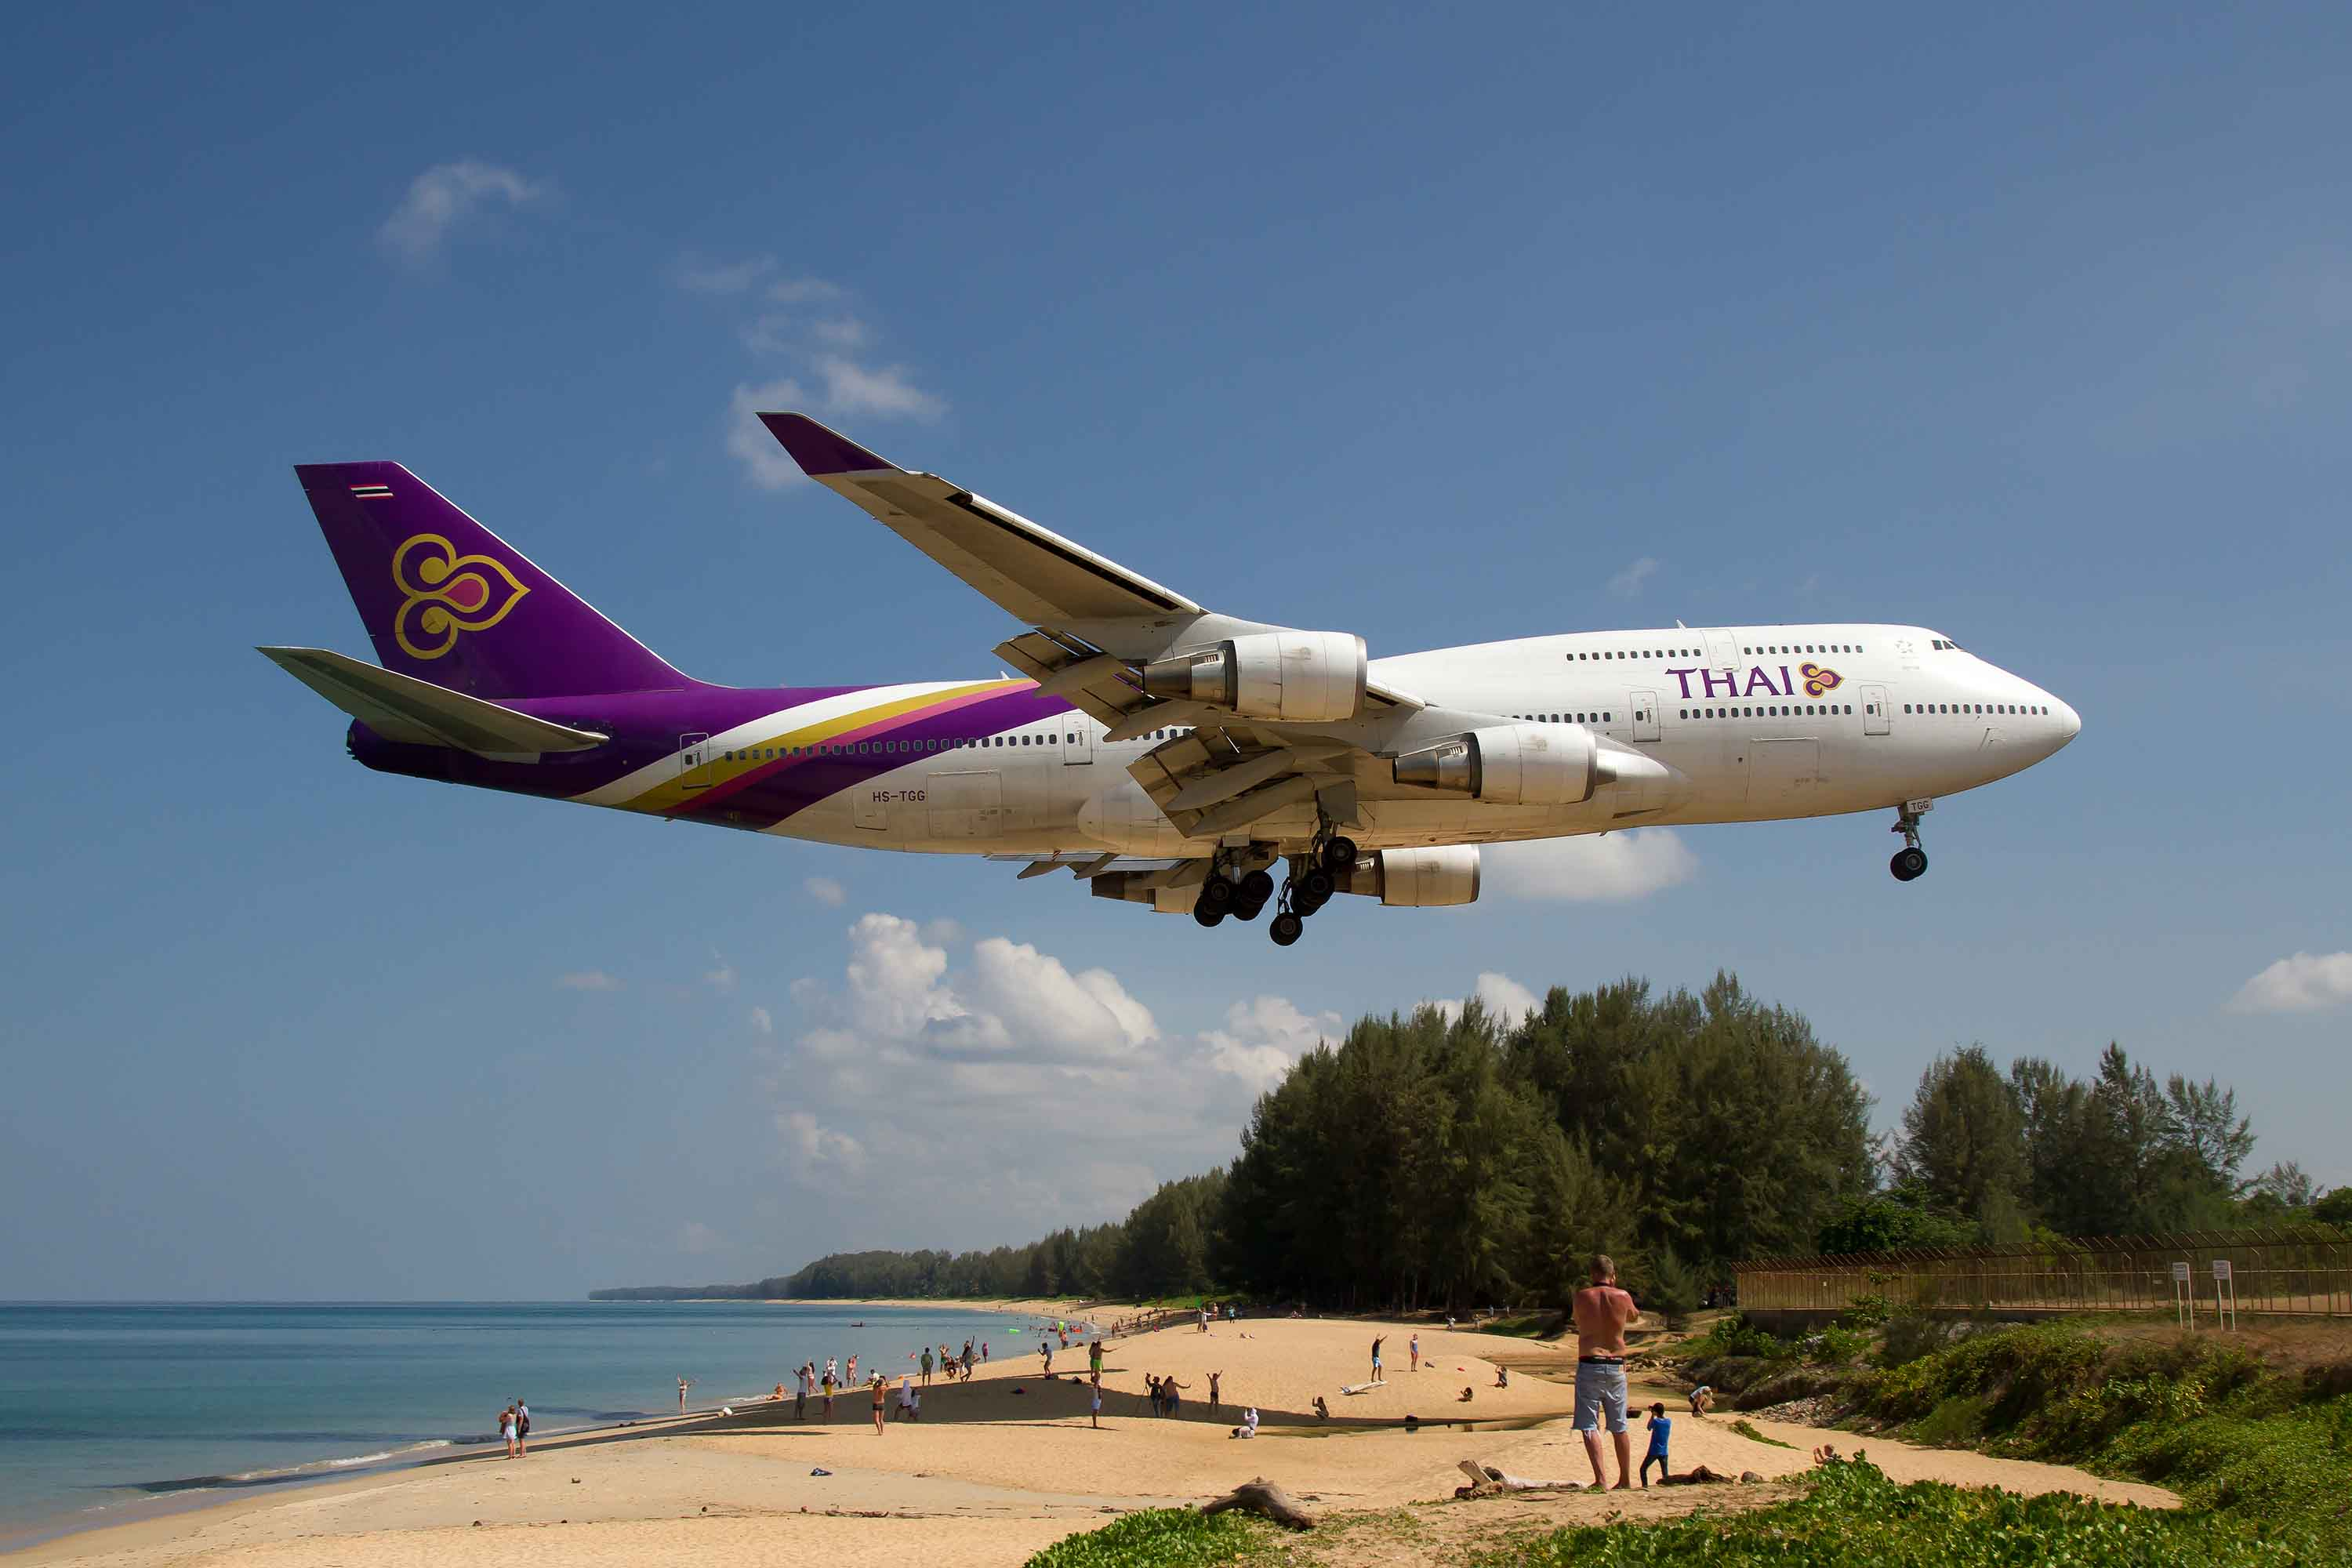 Plane spotting at Mai Khao Beach in Phuket, Thailand: How safe is it? | CNN  Travel